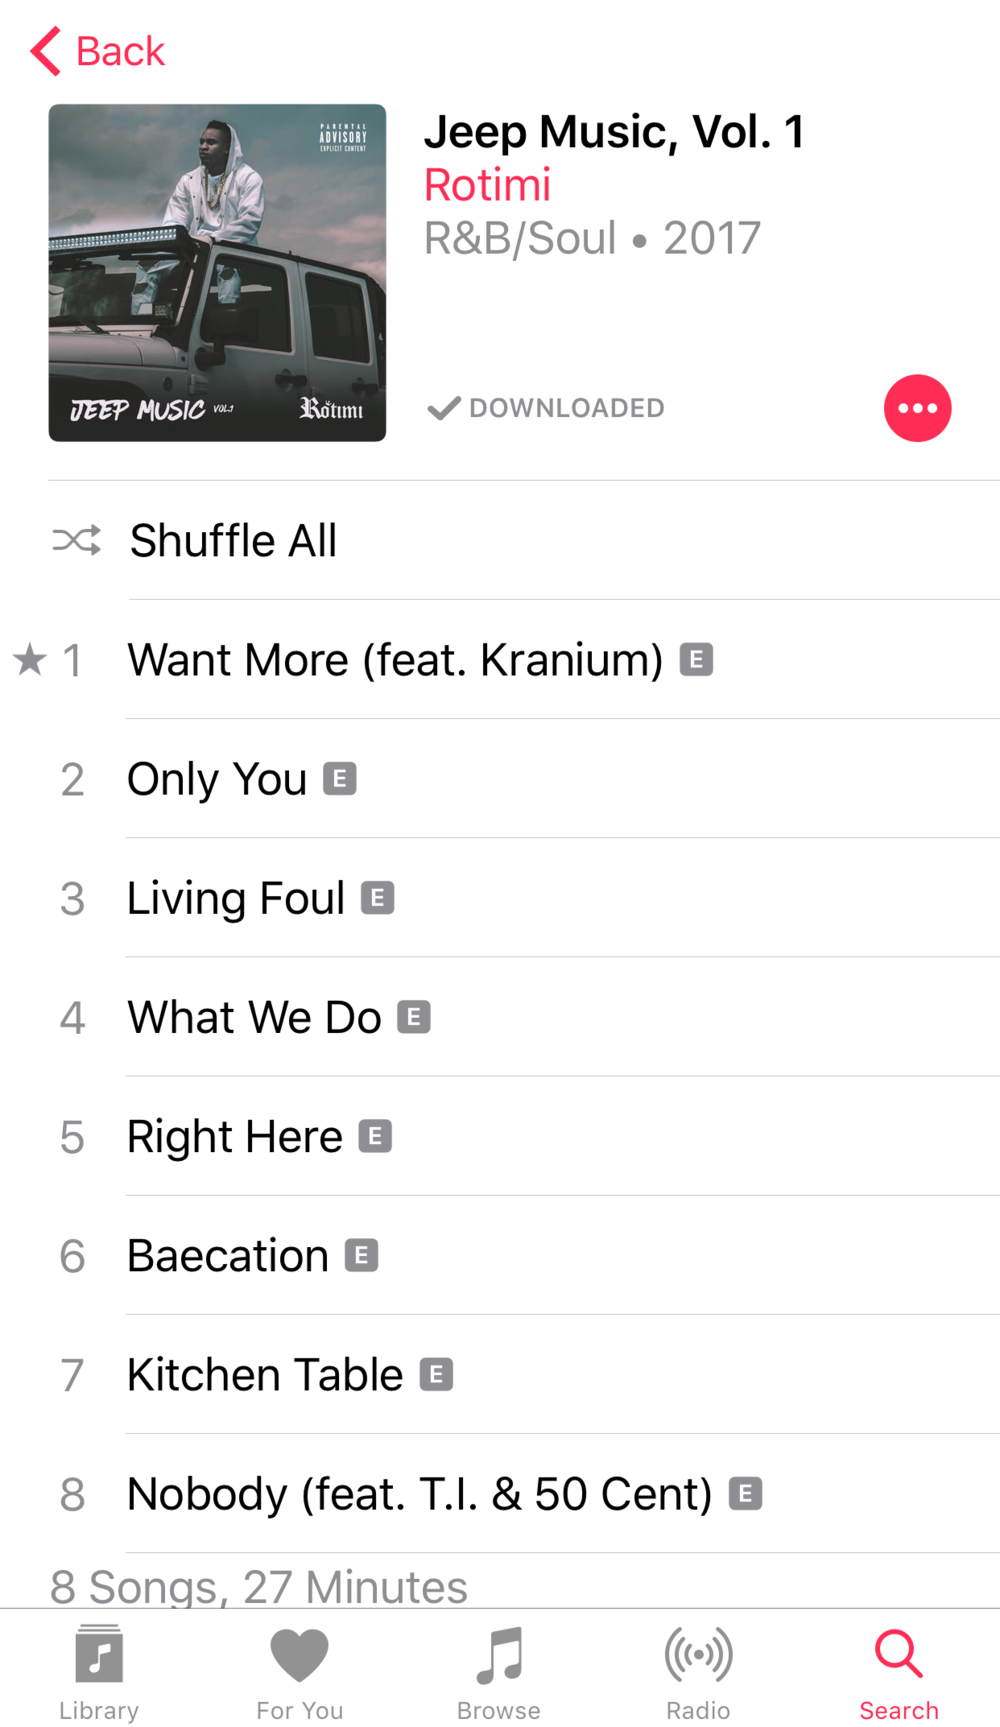 - I have personally listened to his music and I can honestly say that he has a really nice voice and this last body of work gives me some really good R&B vibes, that we can all use right about now.Check out his album cover and track list shown here and definitely give it a listen. It's pretty dope.